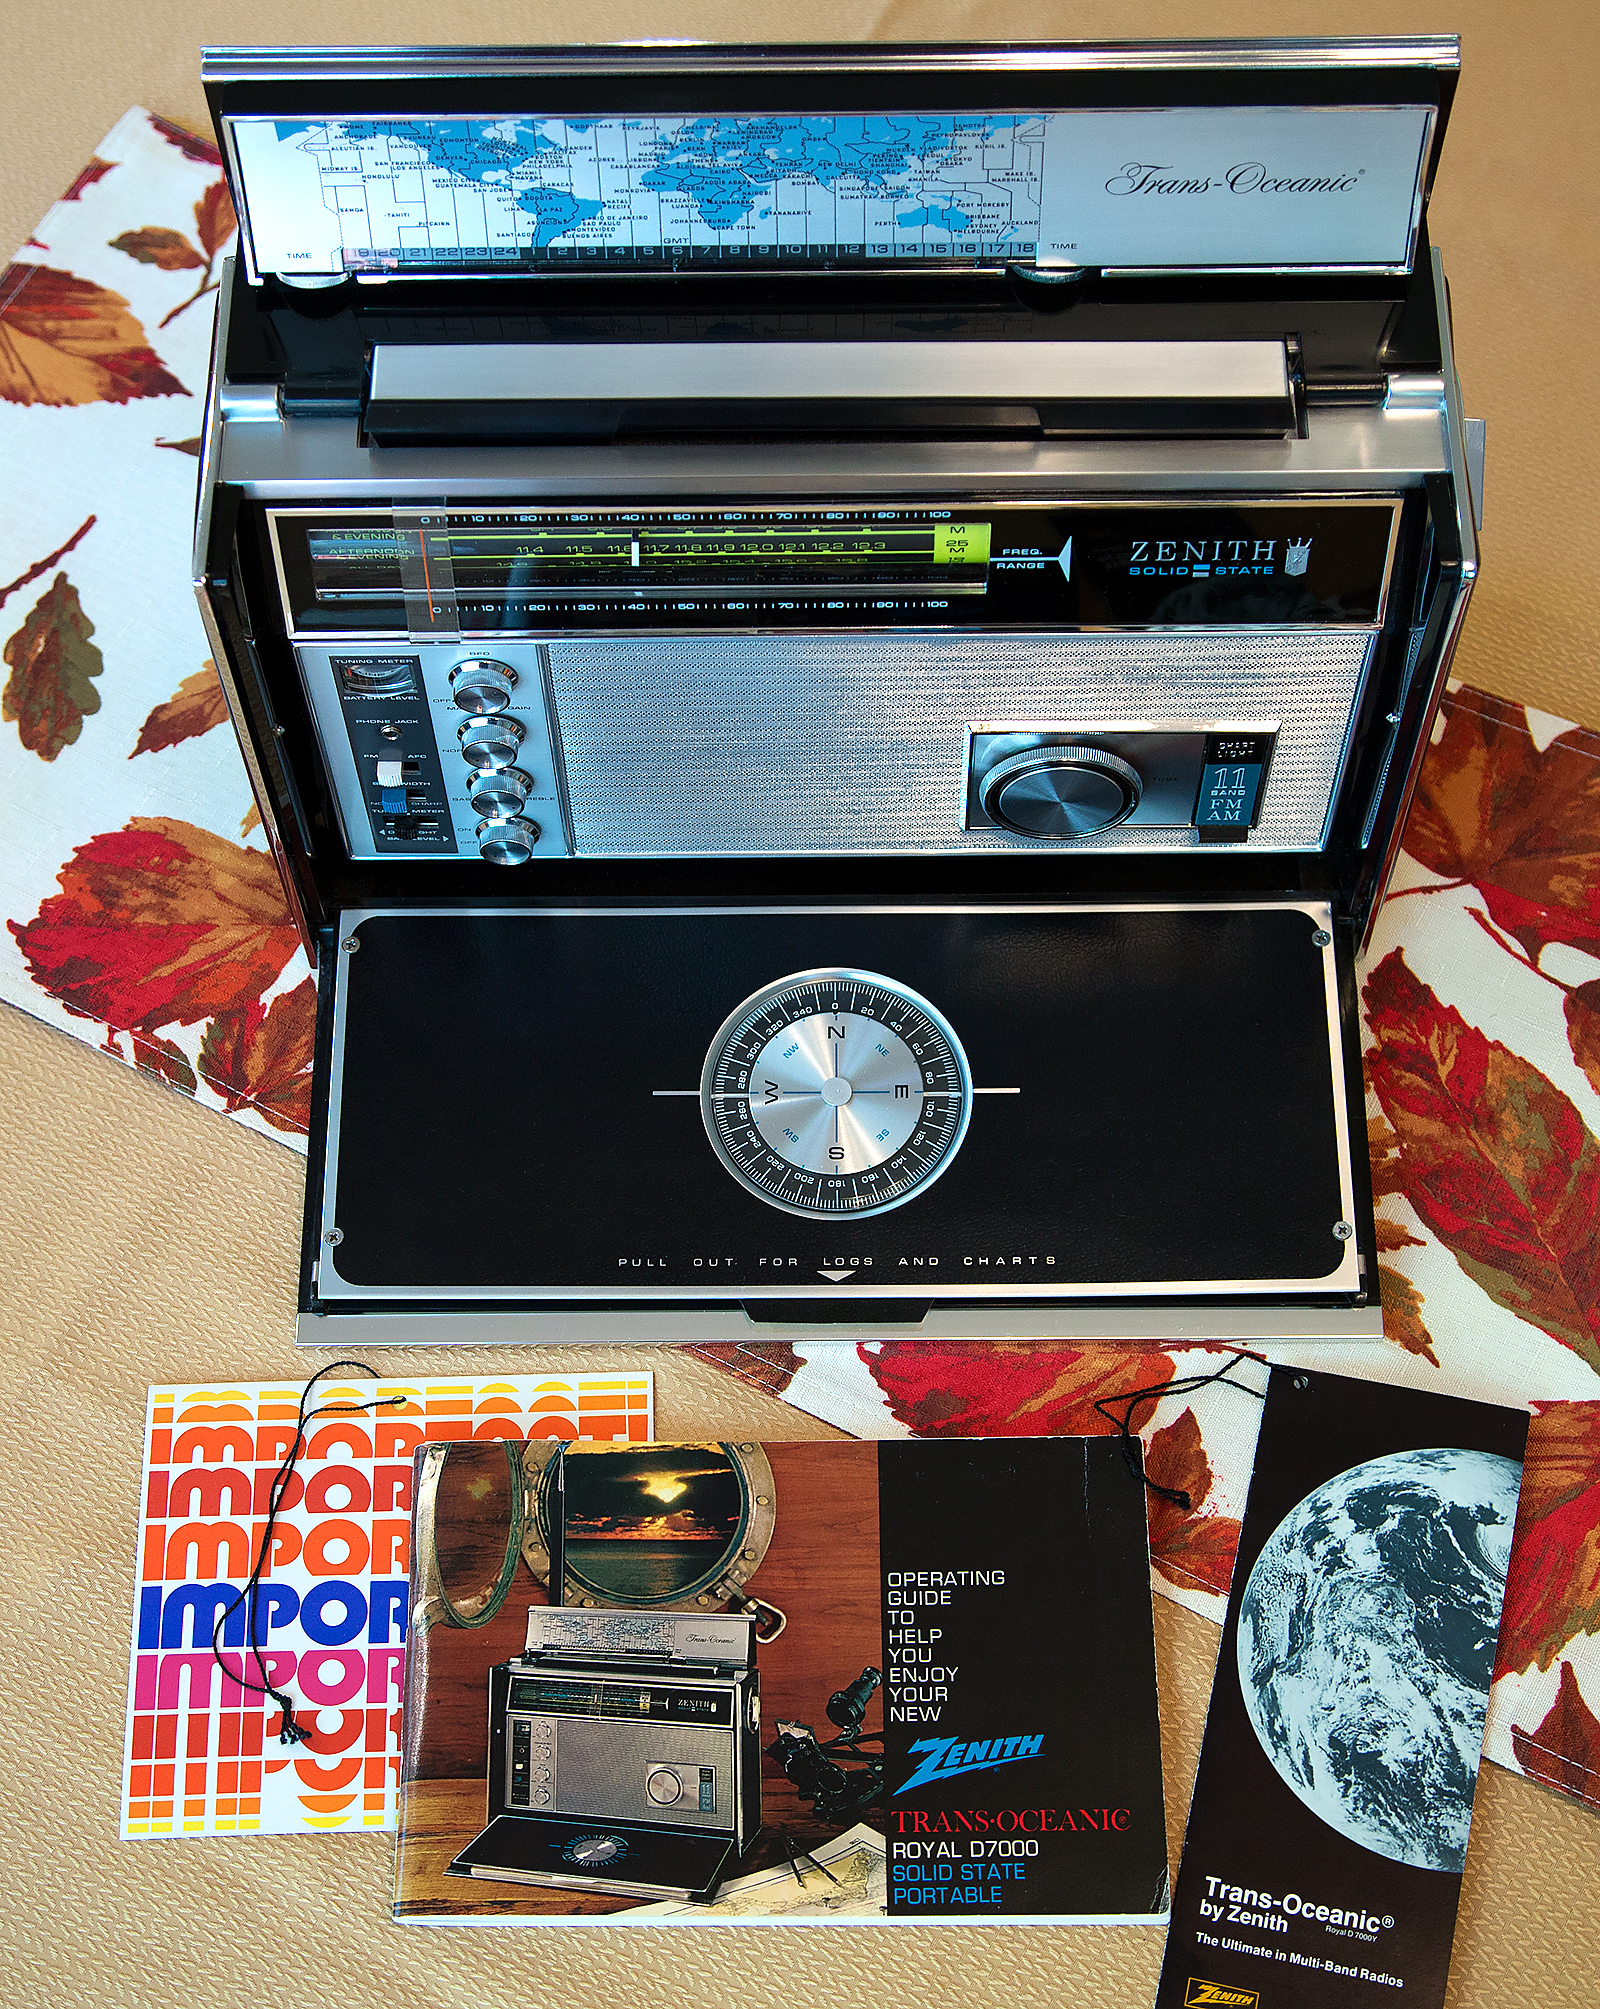 Ebay Find The Zenith Trans Oceanic Royal D7000y With